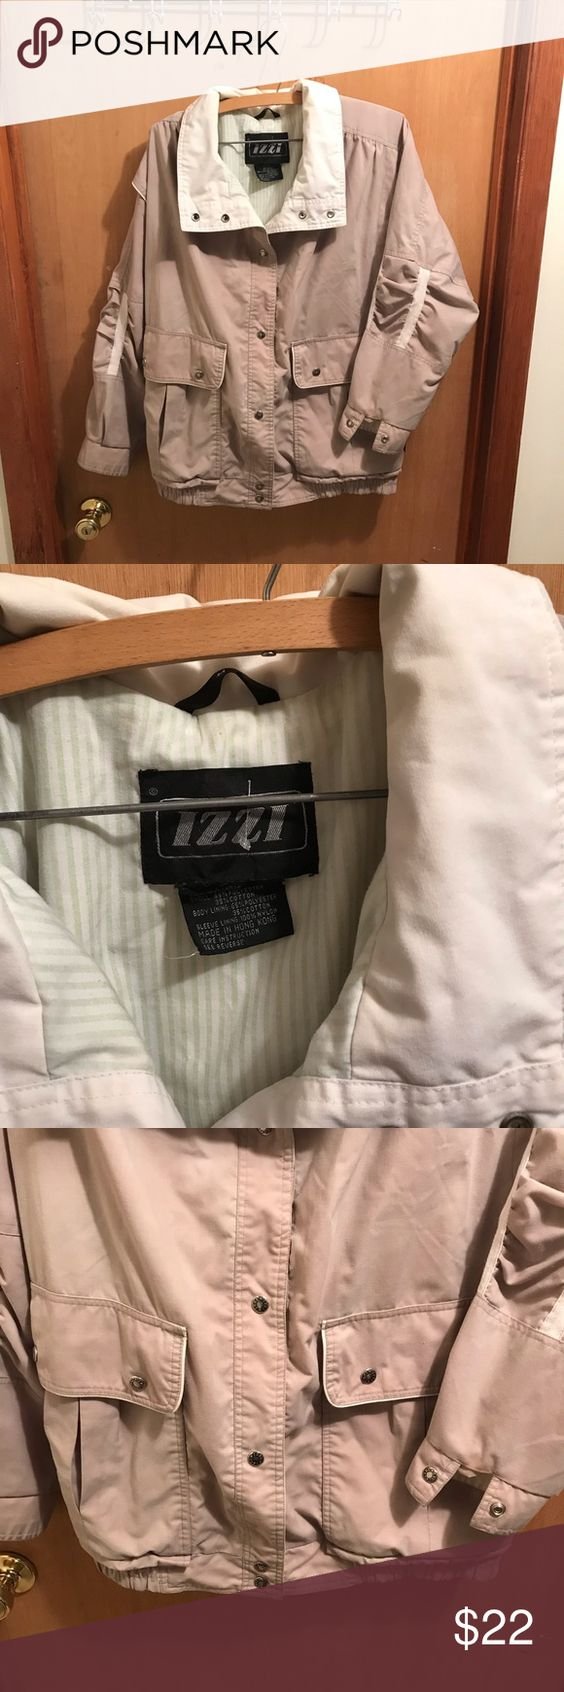 Izzi Jacket Tan And Creme Snap Down Jacket Size M Green And White Lining 2 Large Front Snap Pockets Elastic At Bottom Of Clothes Design Coat Fashion Design [ 1692 x 564 Pixel ]